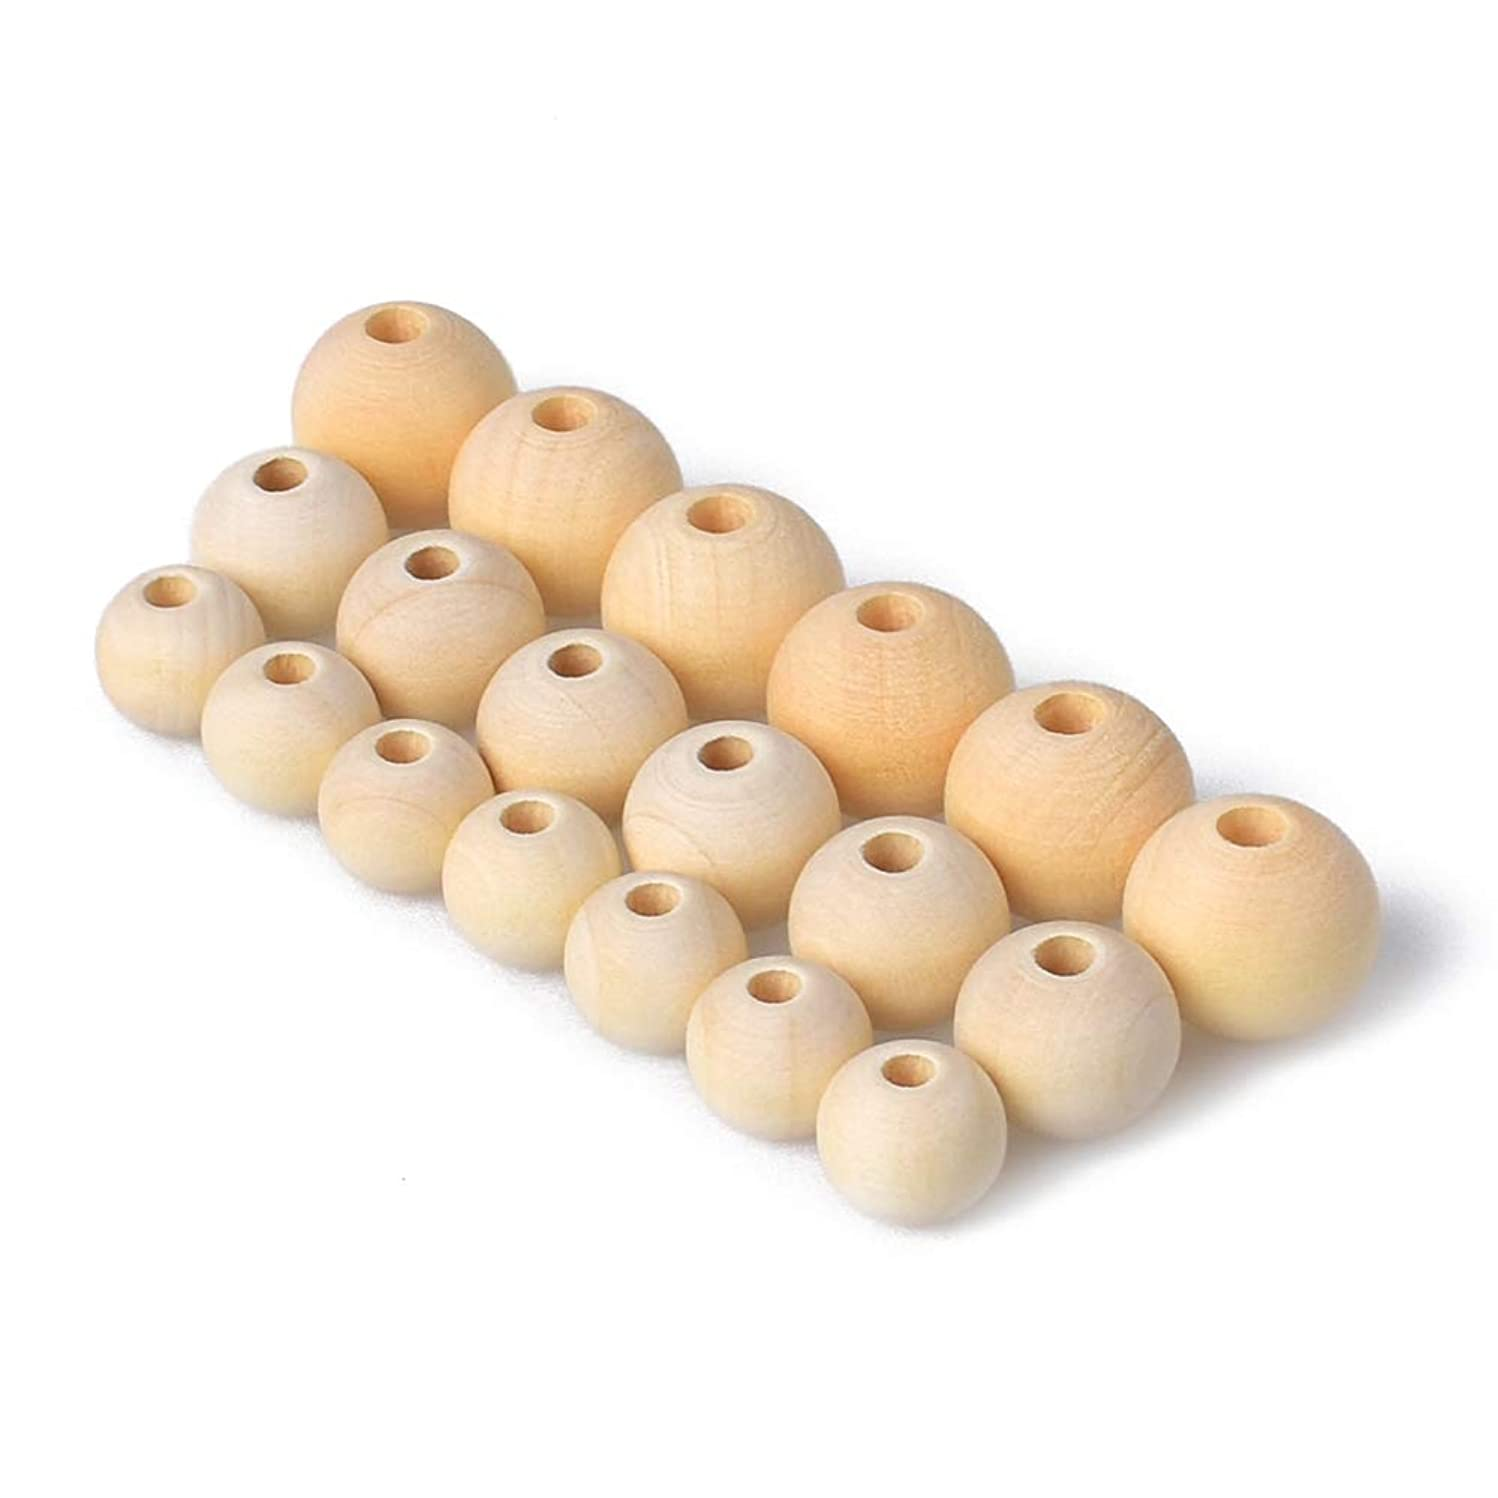 Hagao Unfinished Wood Beads Natural Color Round Ball Wood Spacer Beads DIY Loose Wooden Beads for Jewelry Making (10mm 12mm 14mm 300pcs)